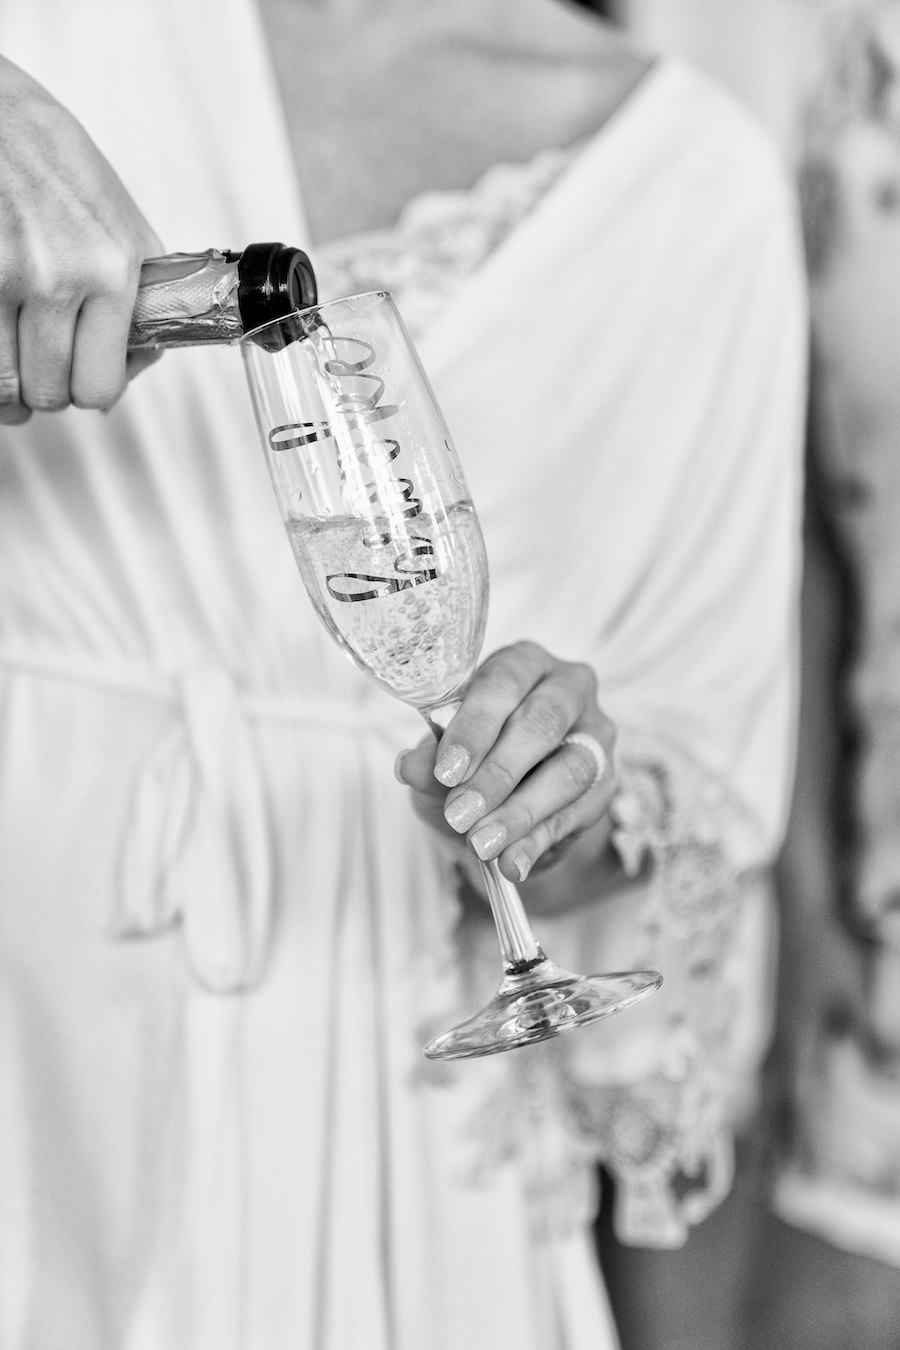 A bride pouring champagne the morning of her wedding